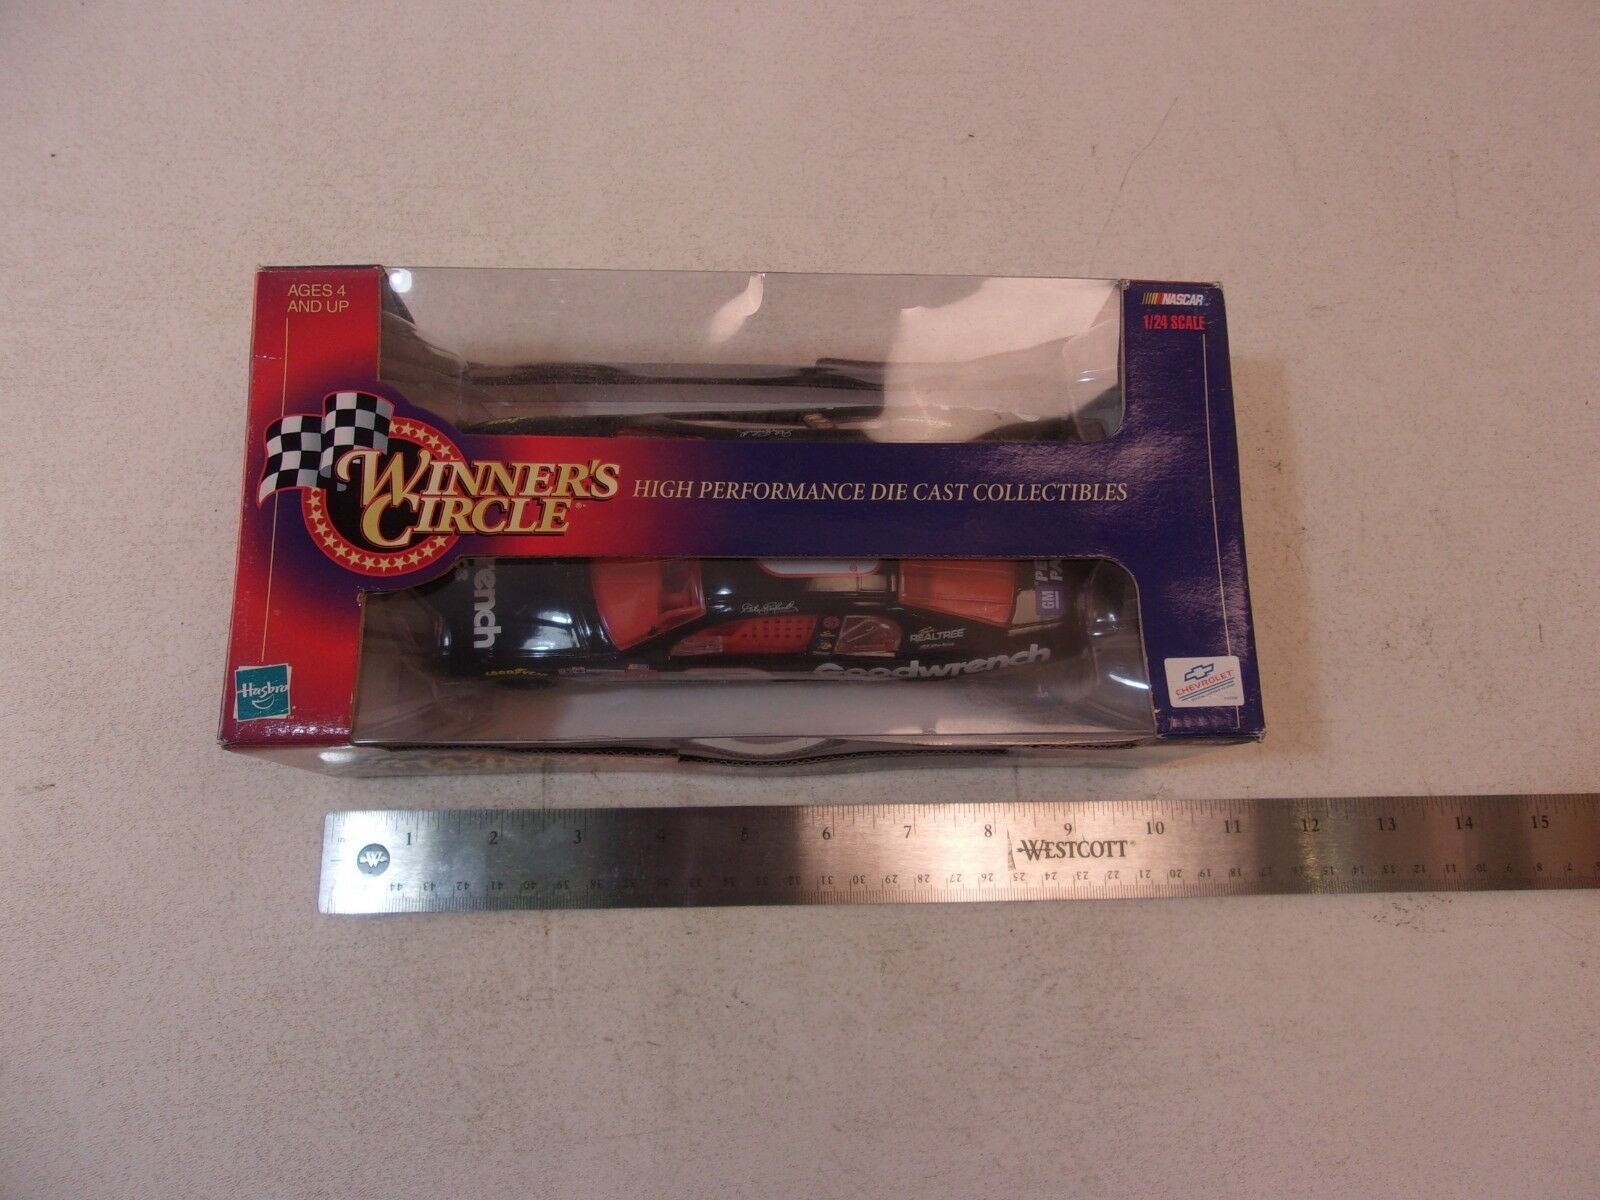 1998 WINNERS 1:24 CIRCLE DALE EARNHARDT   3 GOODWRENCH 1:24 WINNERS DIECAST CAR 9b4141